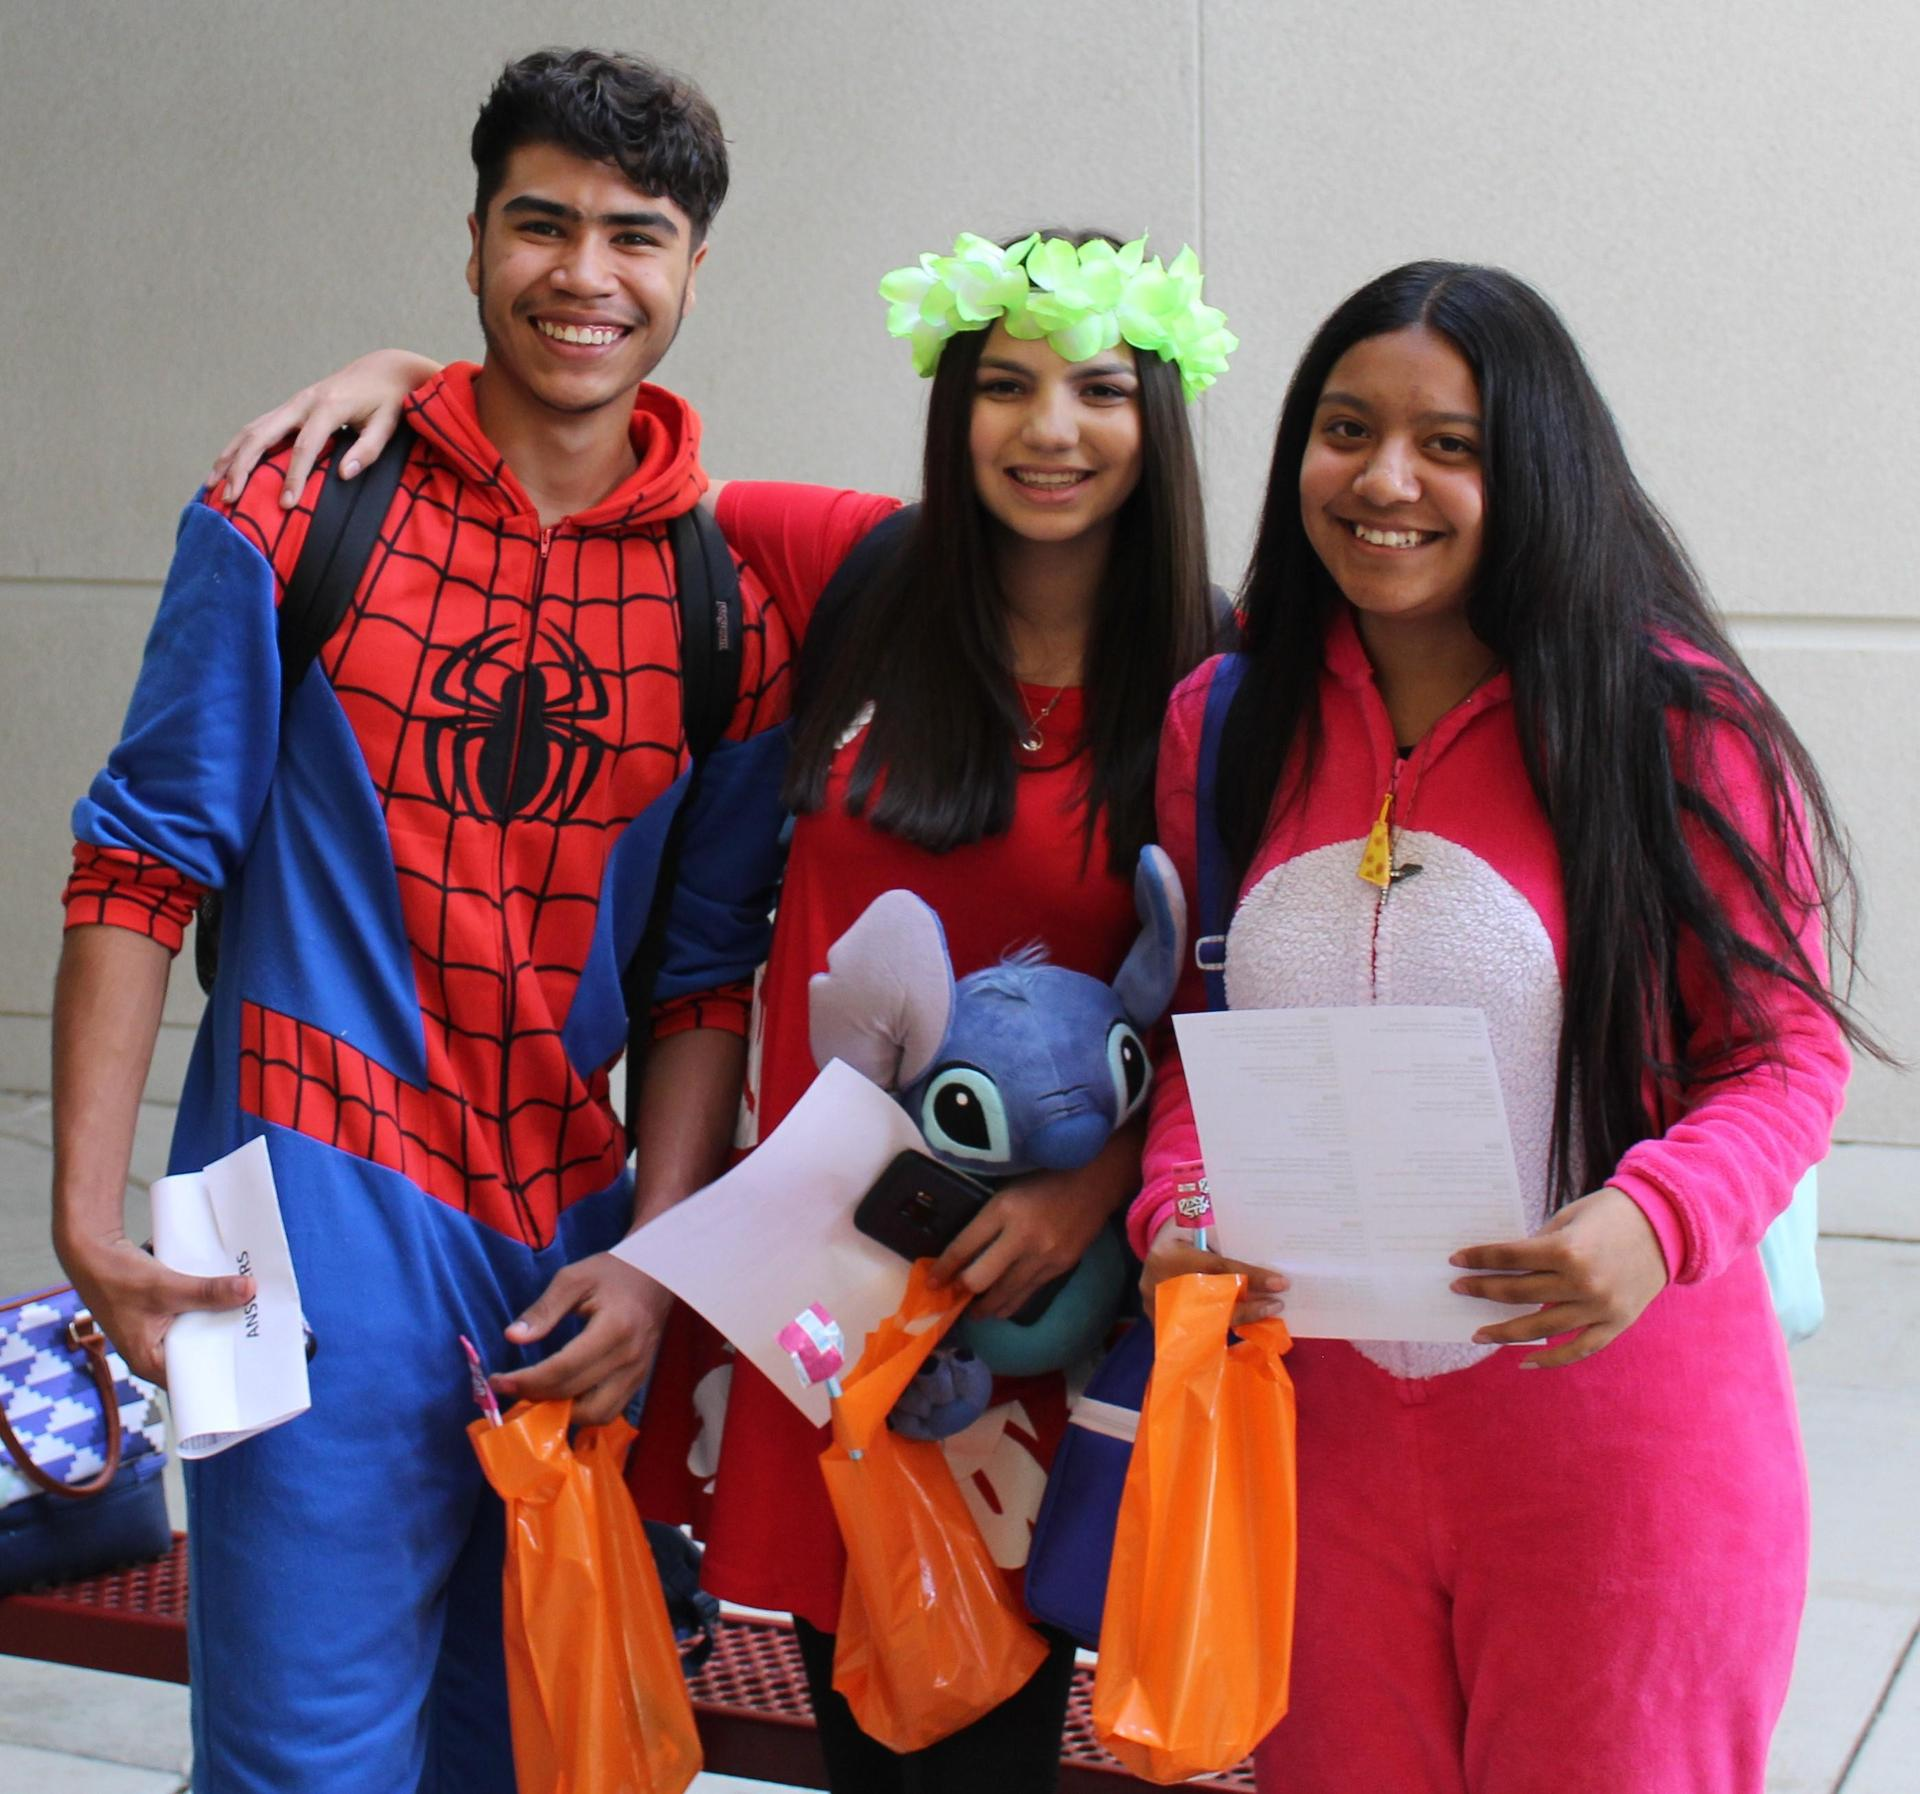 Students and Staff dressing up for Halloween